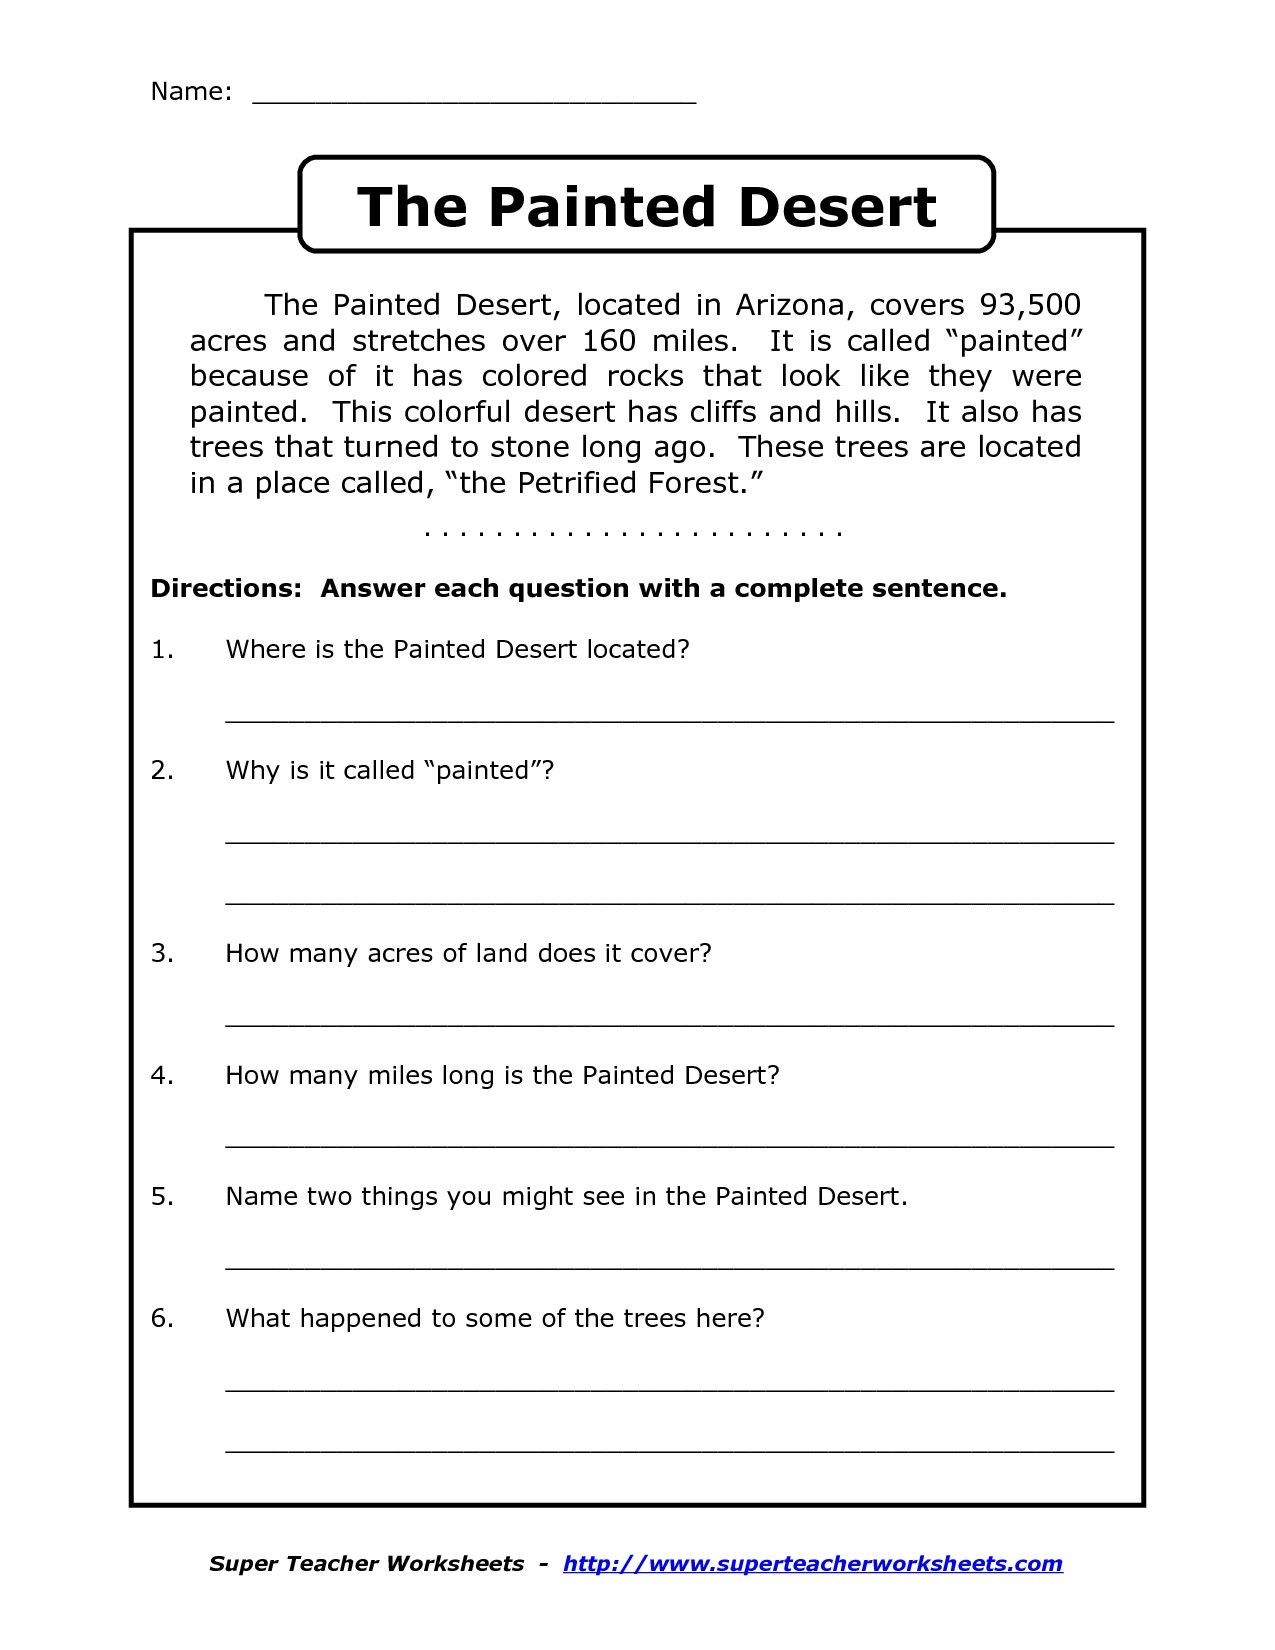 Sequencing events Worksheets Grade 6 Prehension Worksheet for 1st Grade Y2 P3 the Painted